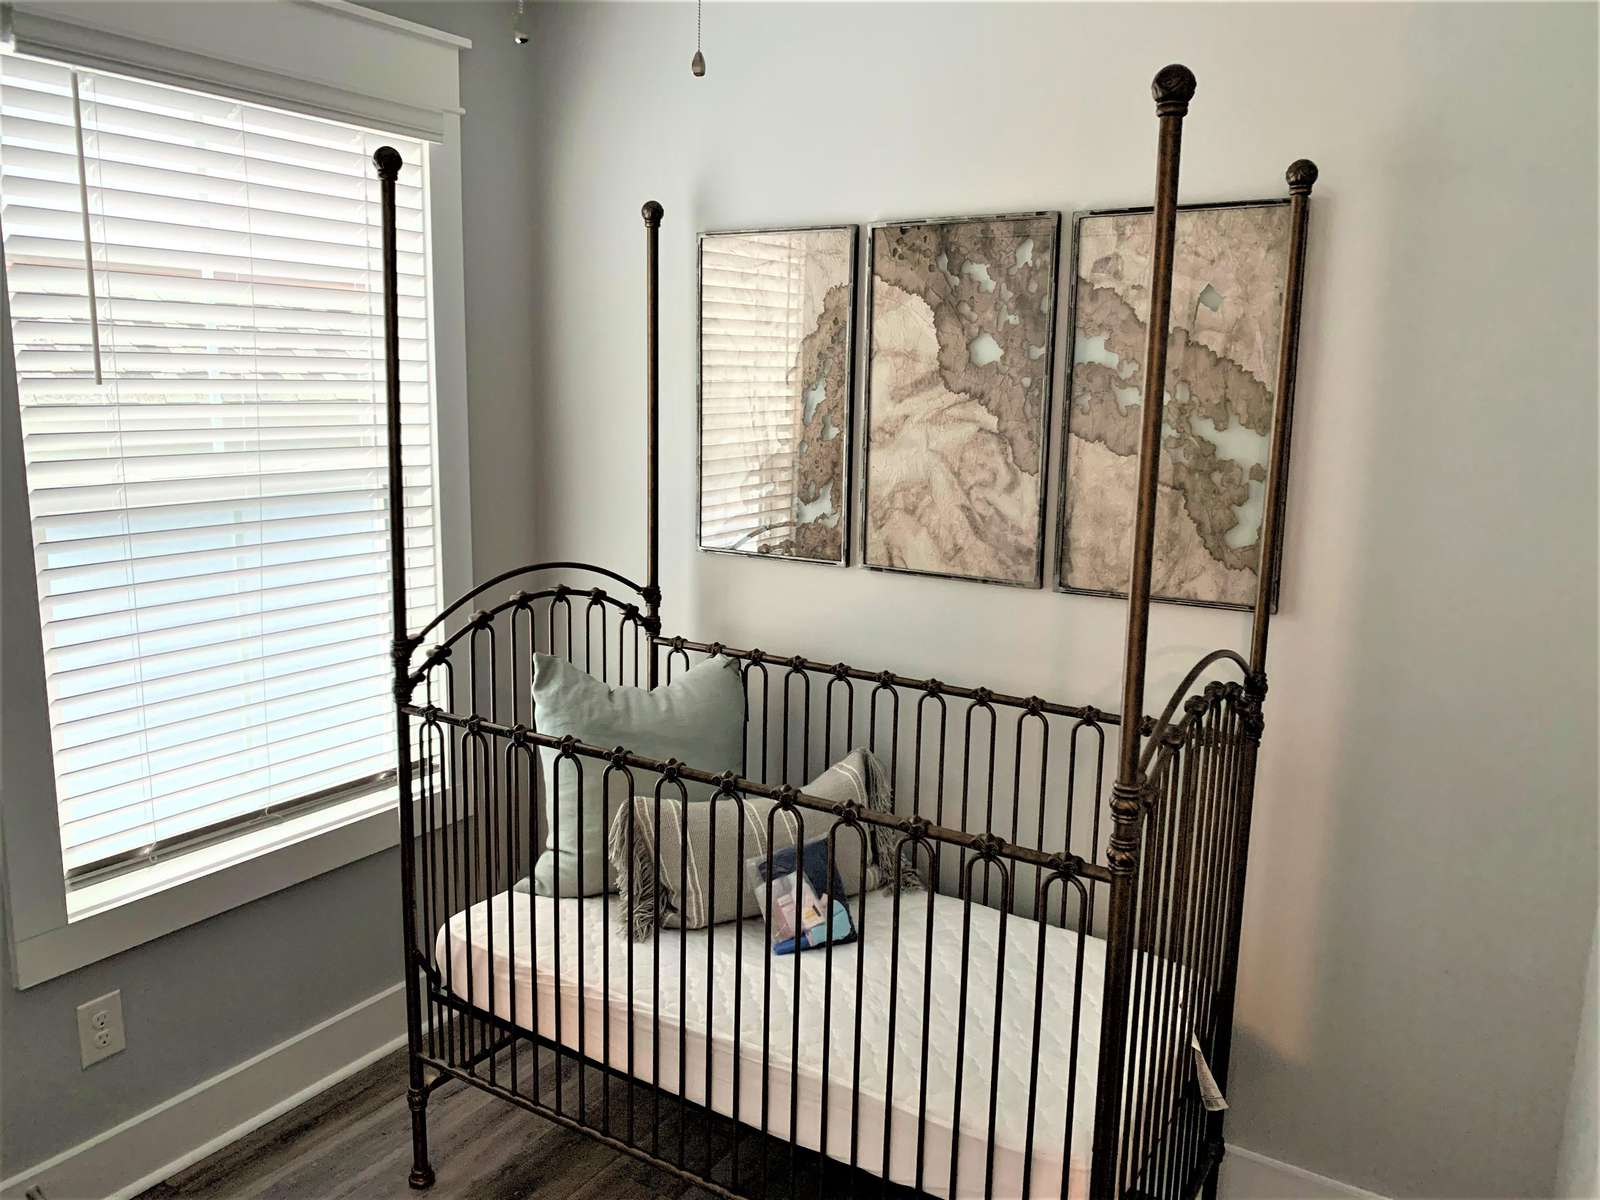 Full Size Crib for Baby